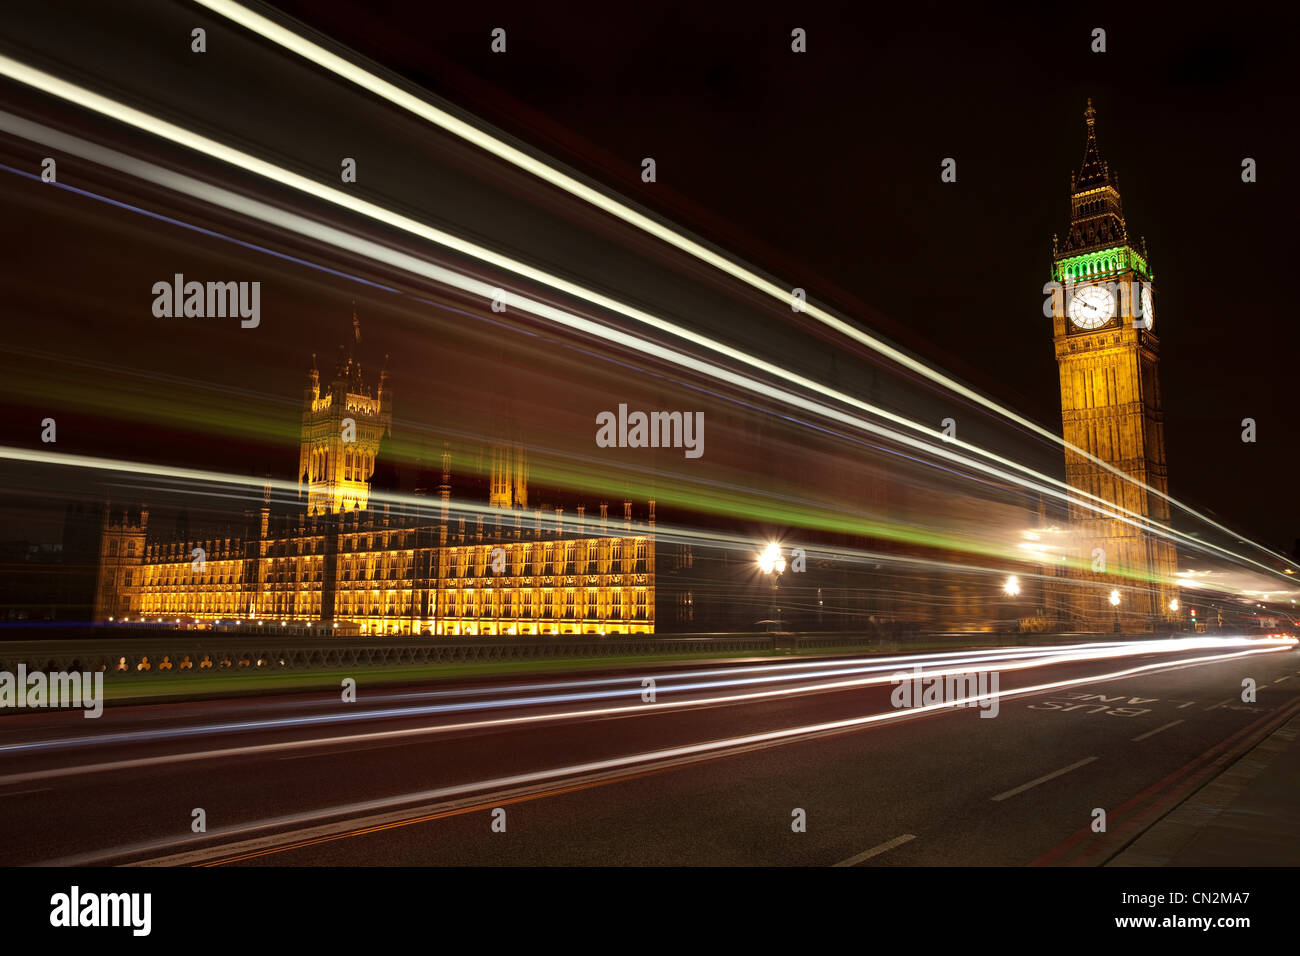 Light trails and Palace of Westminster,London, UK - Stock Image